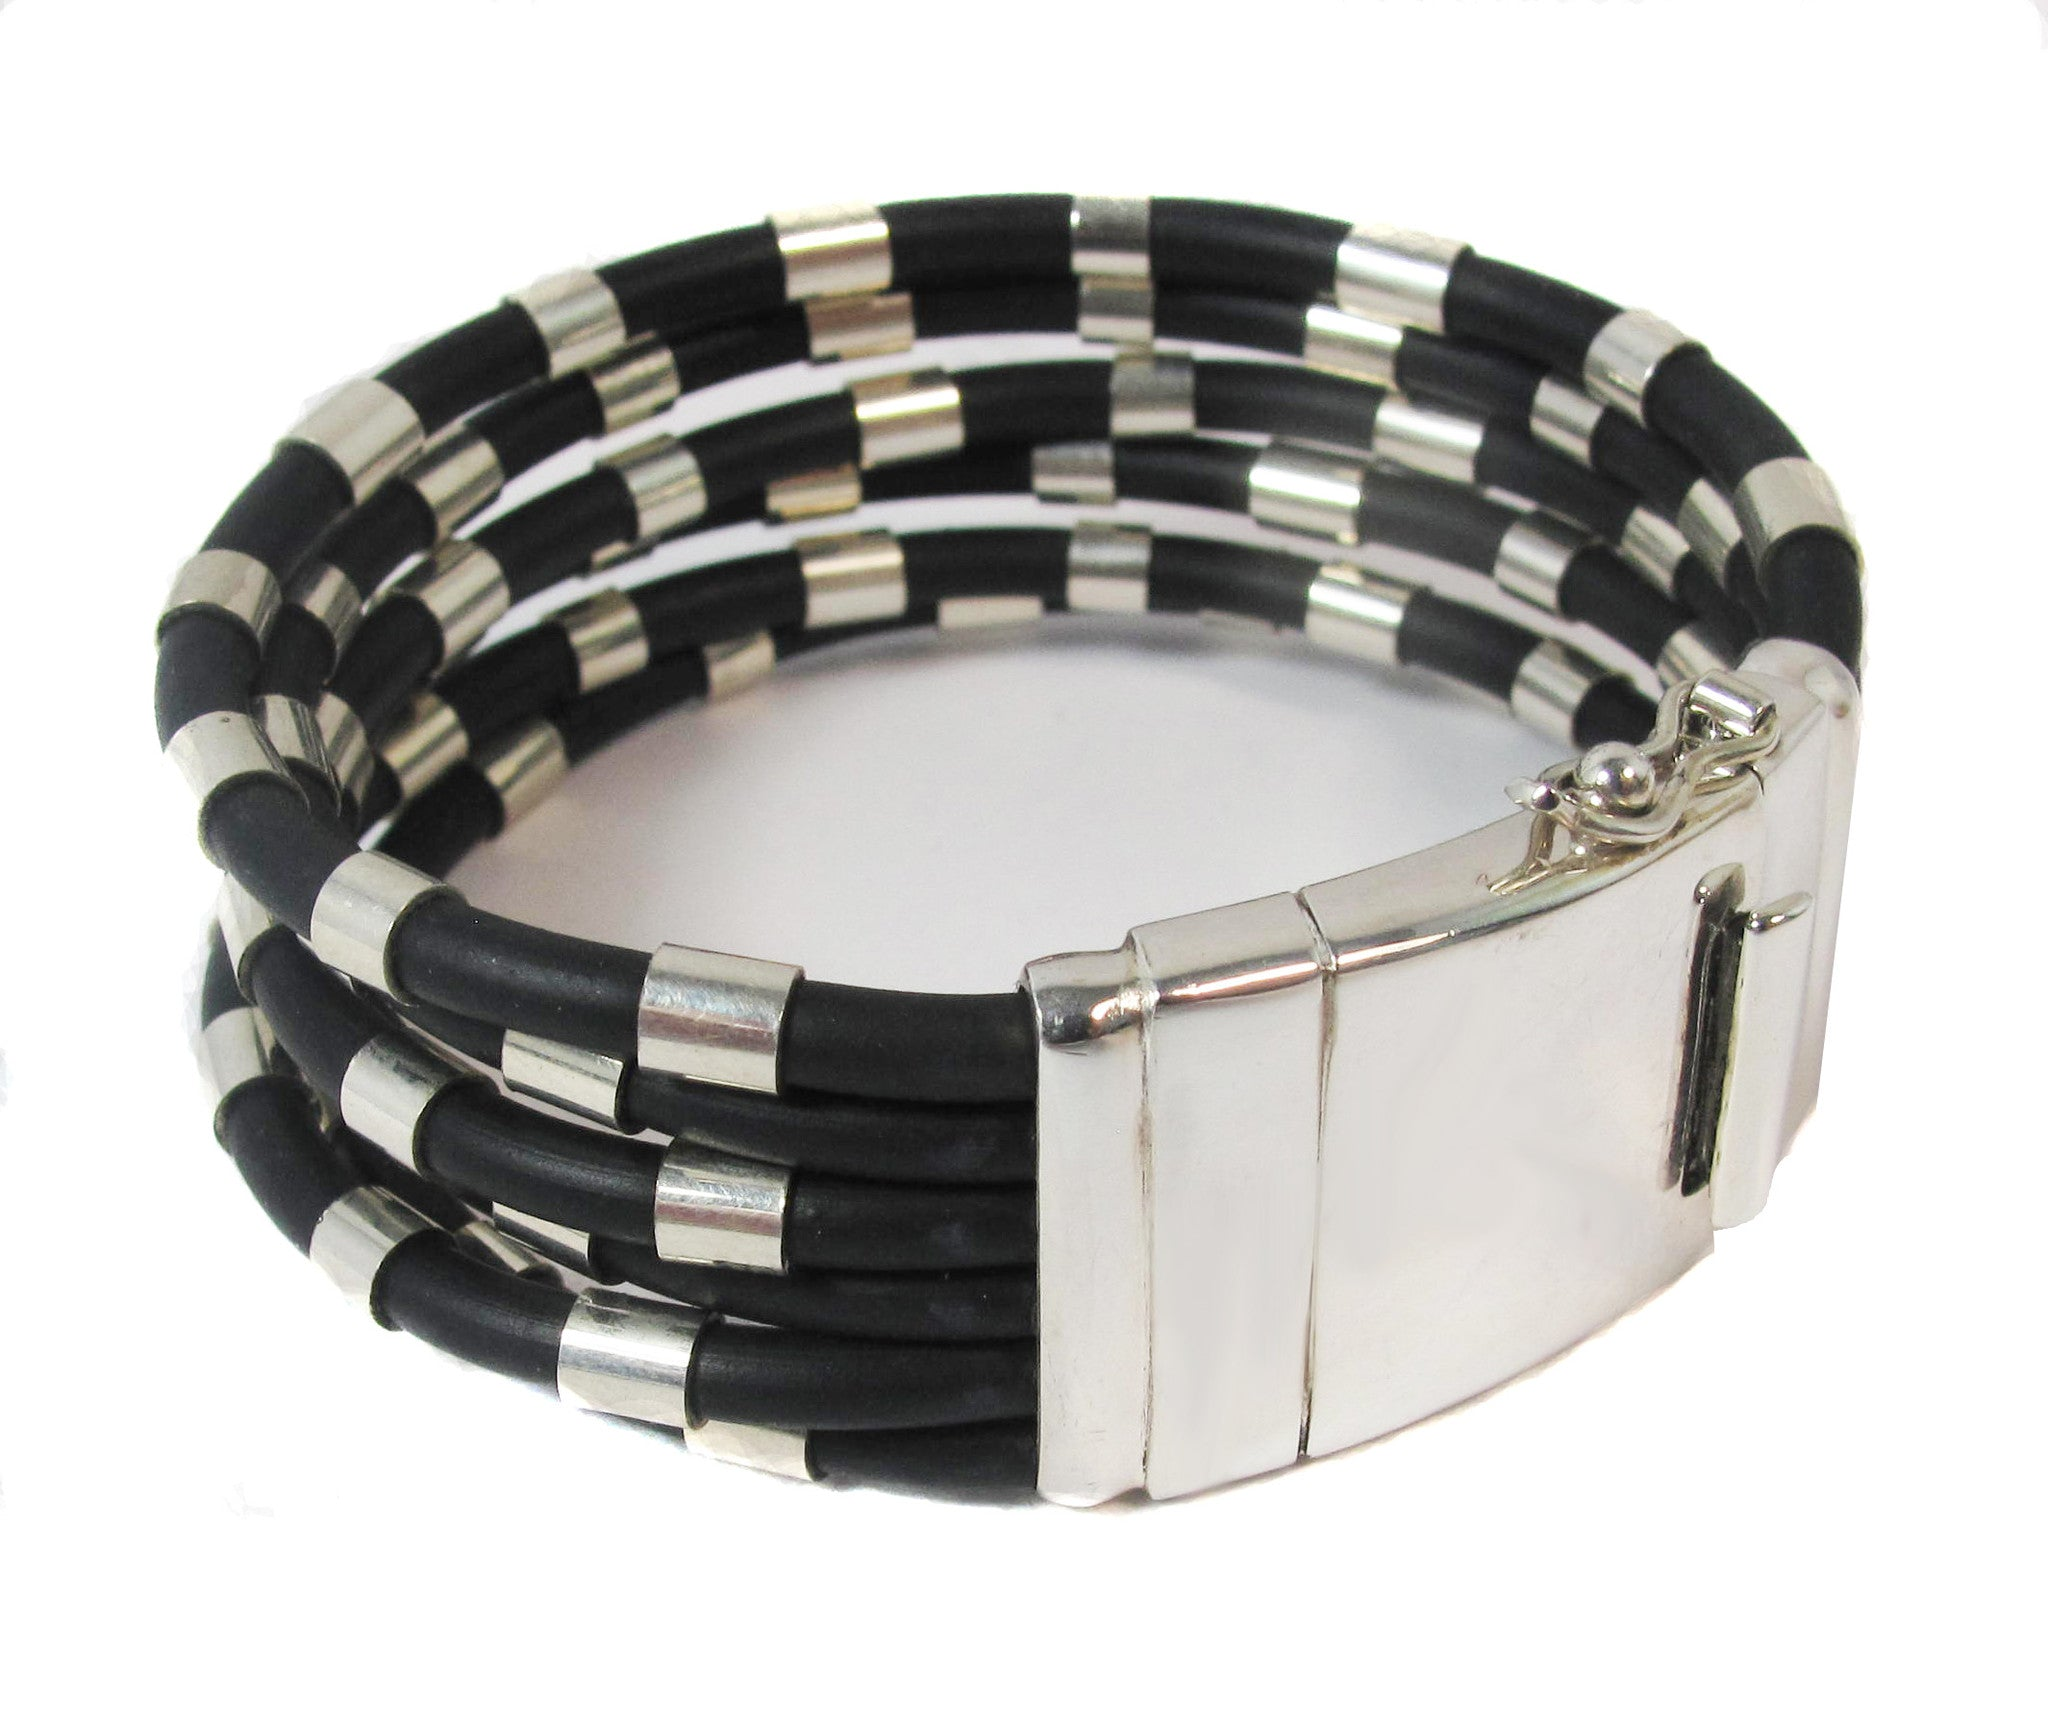 6 strand silver on rubber bracelet band - Agabhumi